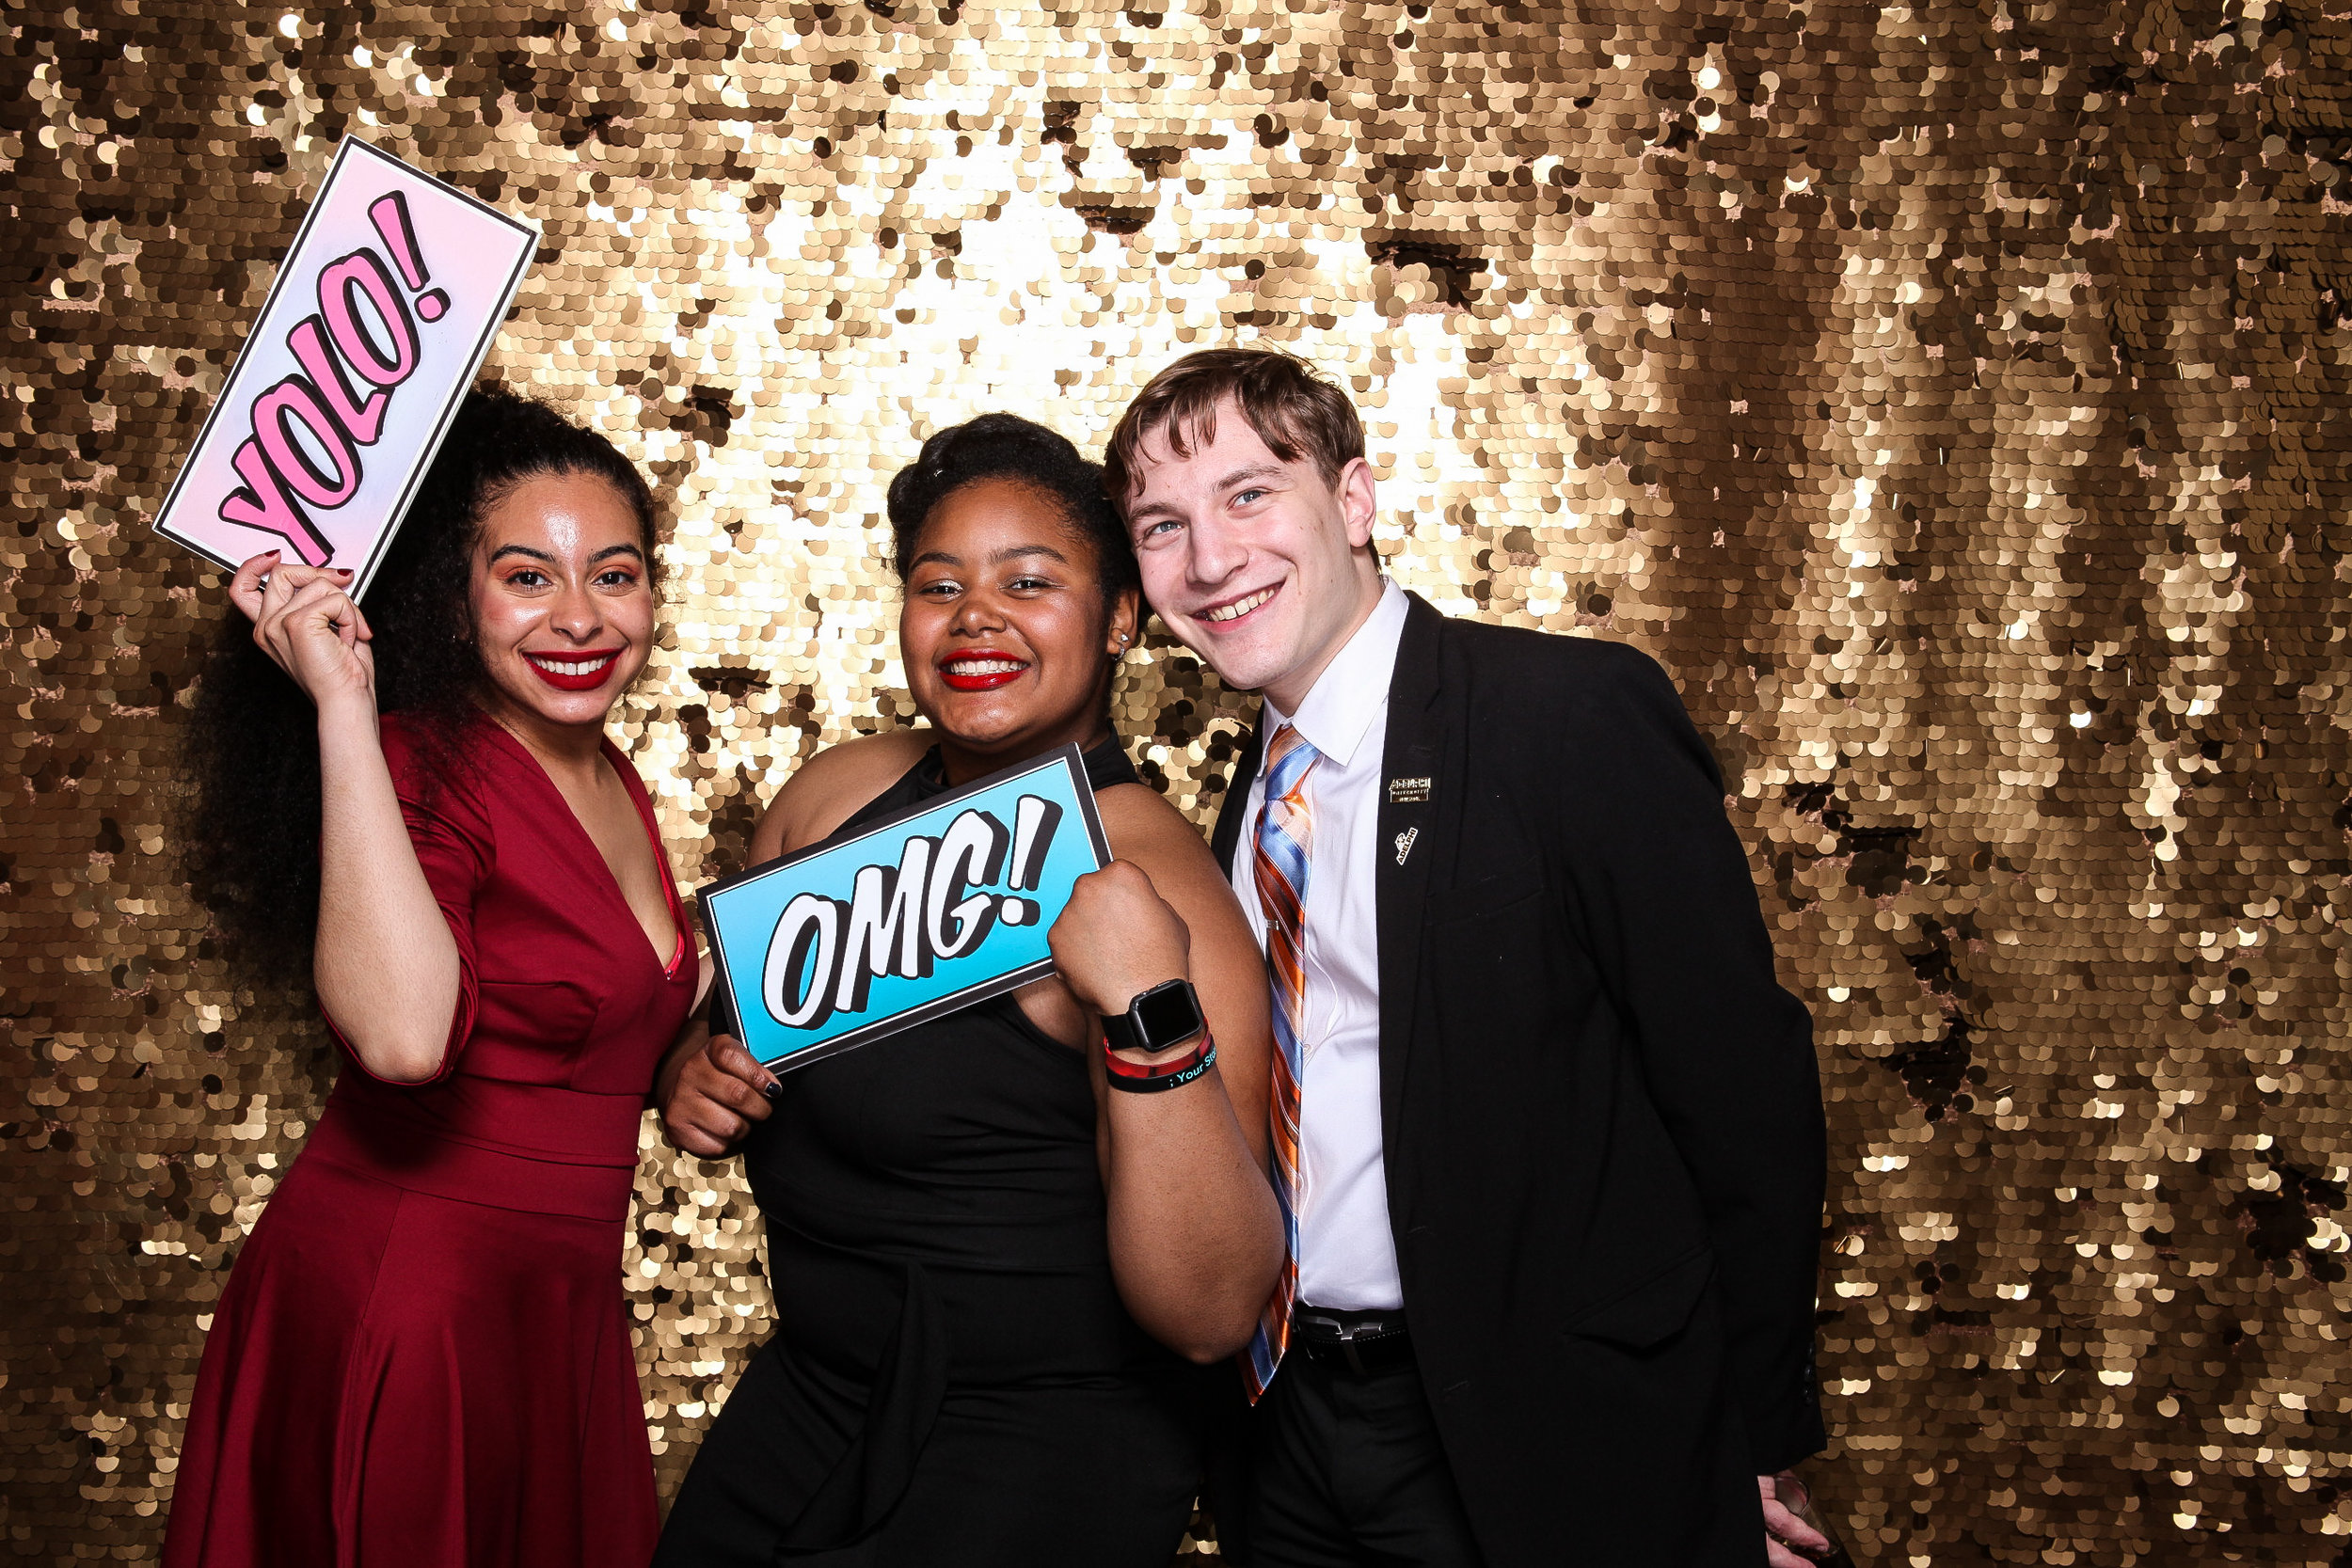 20190503_Adelphi_Senior_Formal-396.jpg